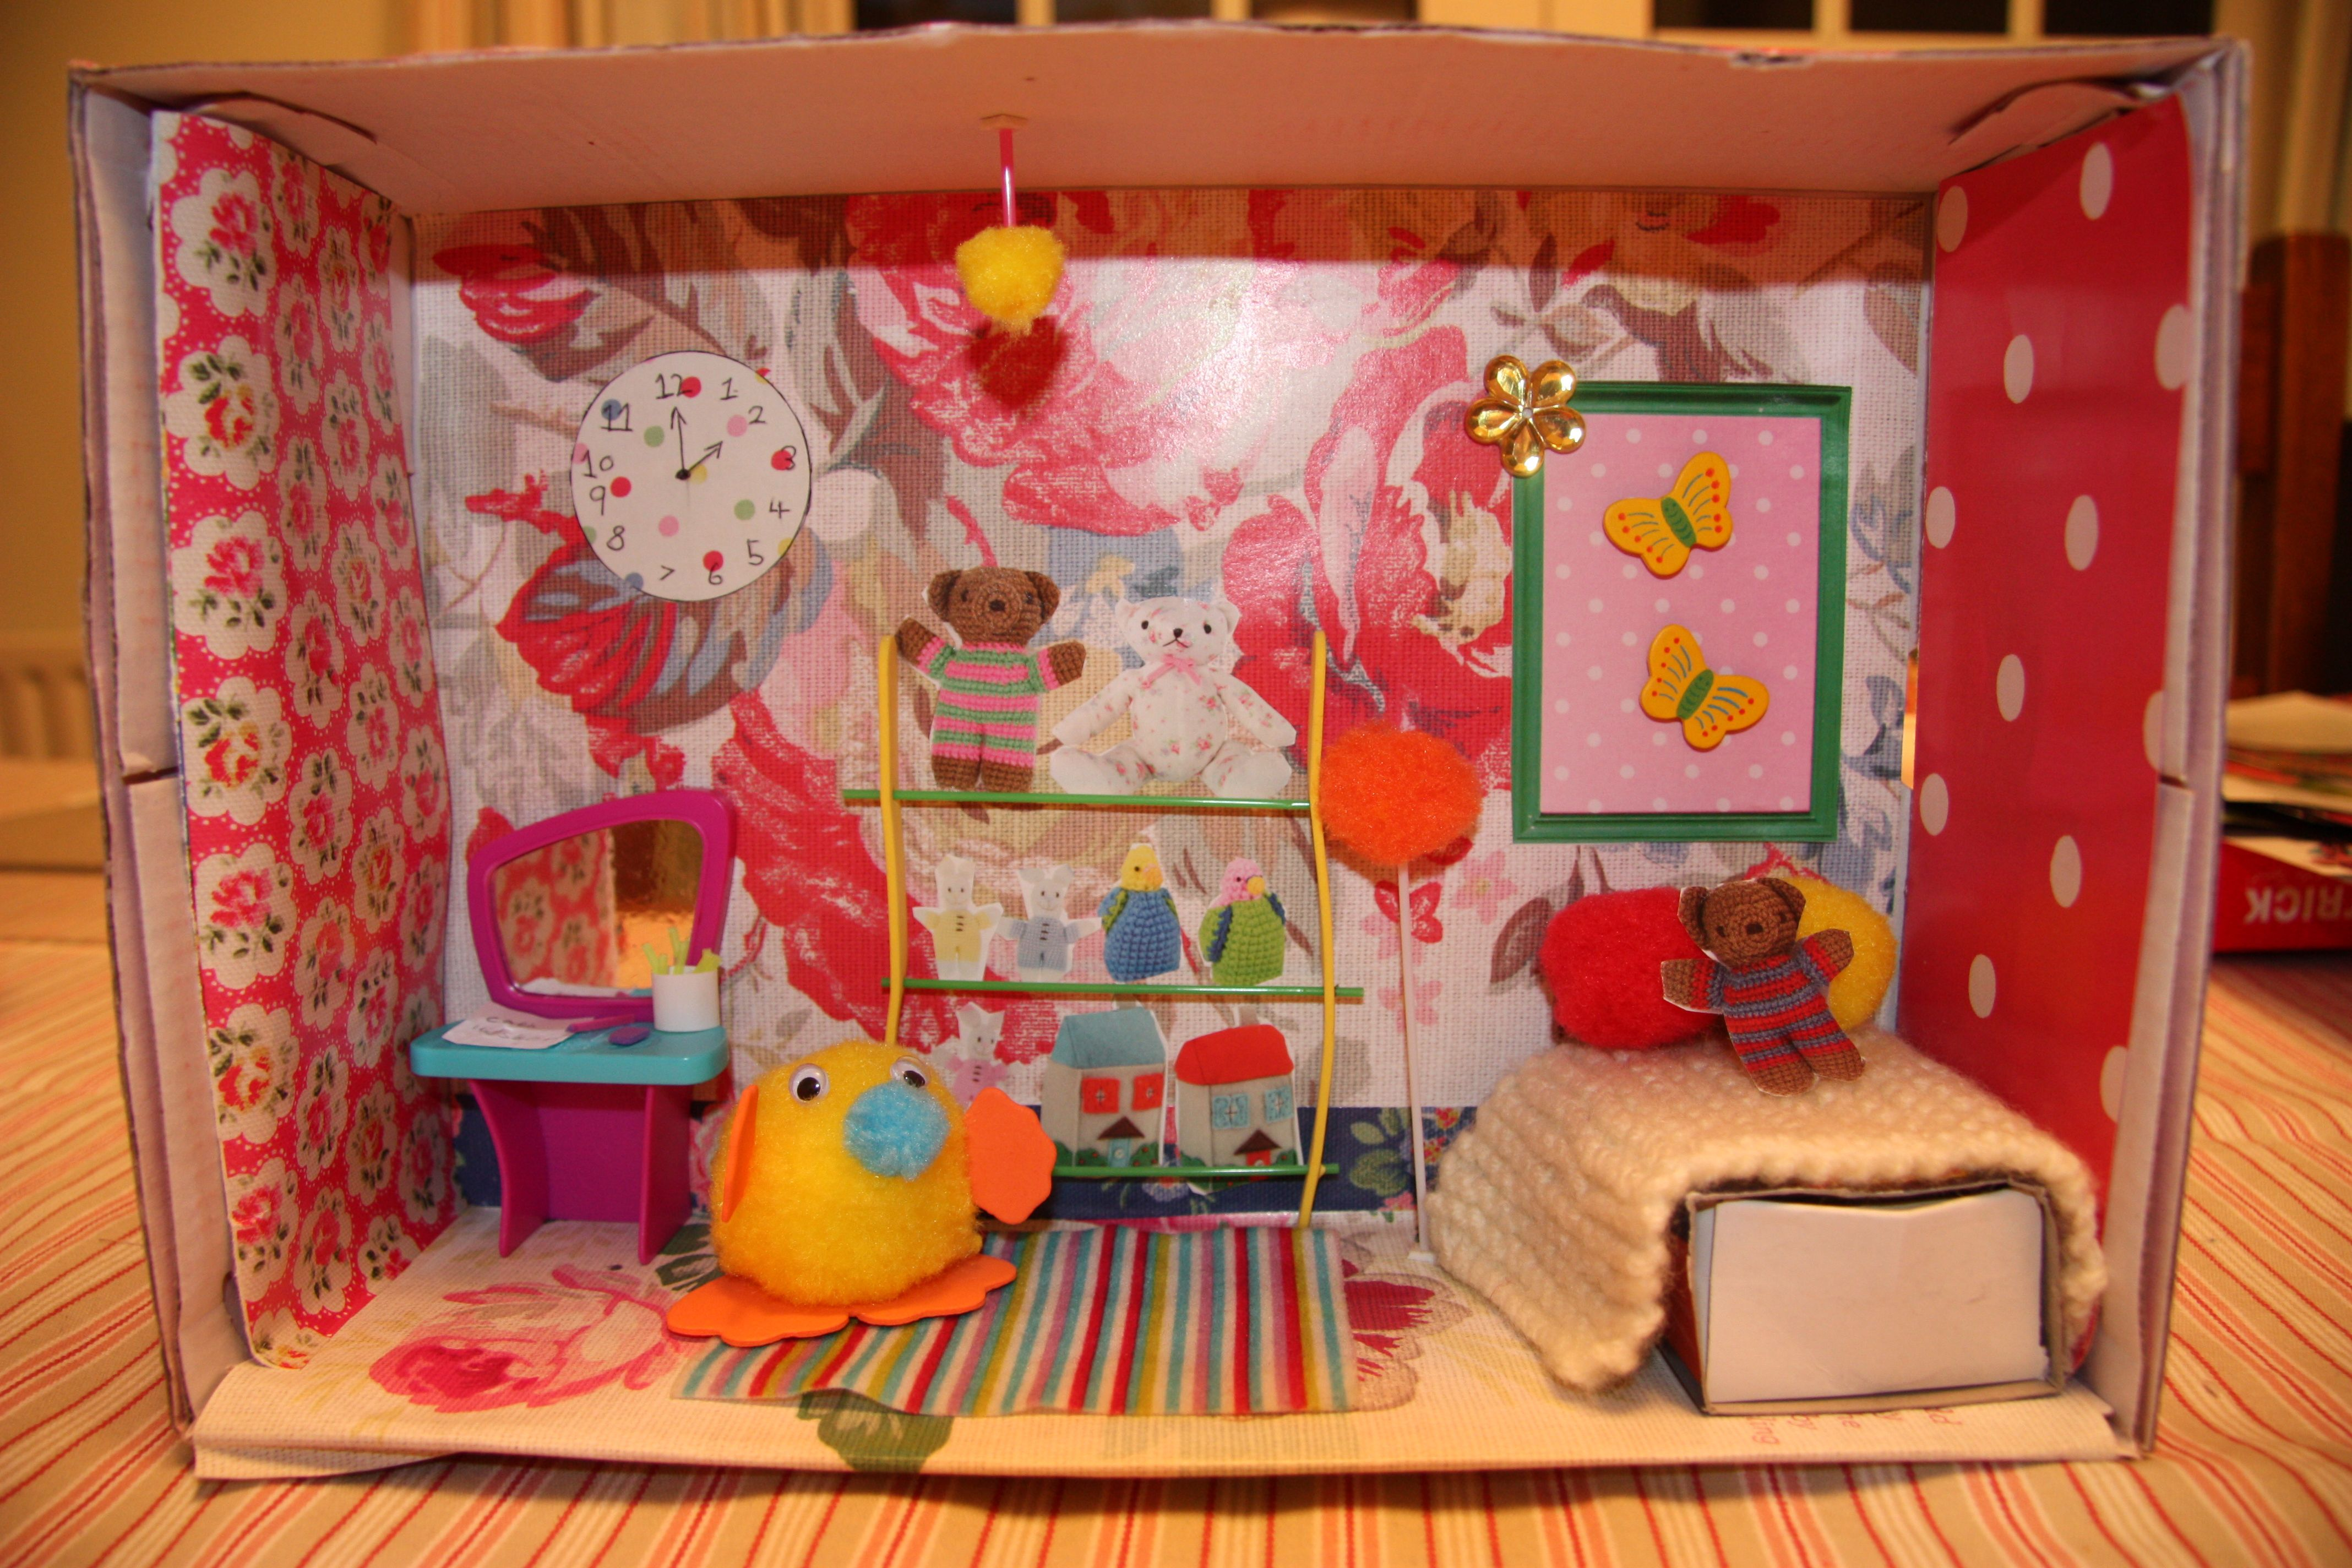 Miniature Children S Bedroom Room Box Diorama: Lots Of Fun With The Kids Making A Shoebox Room